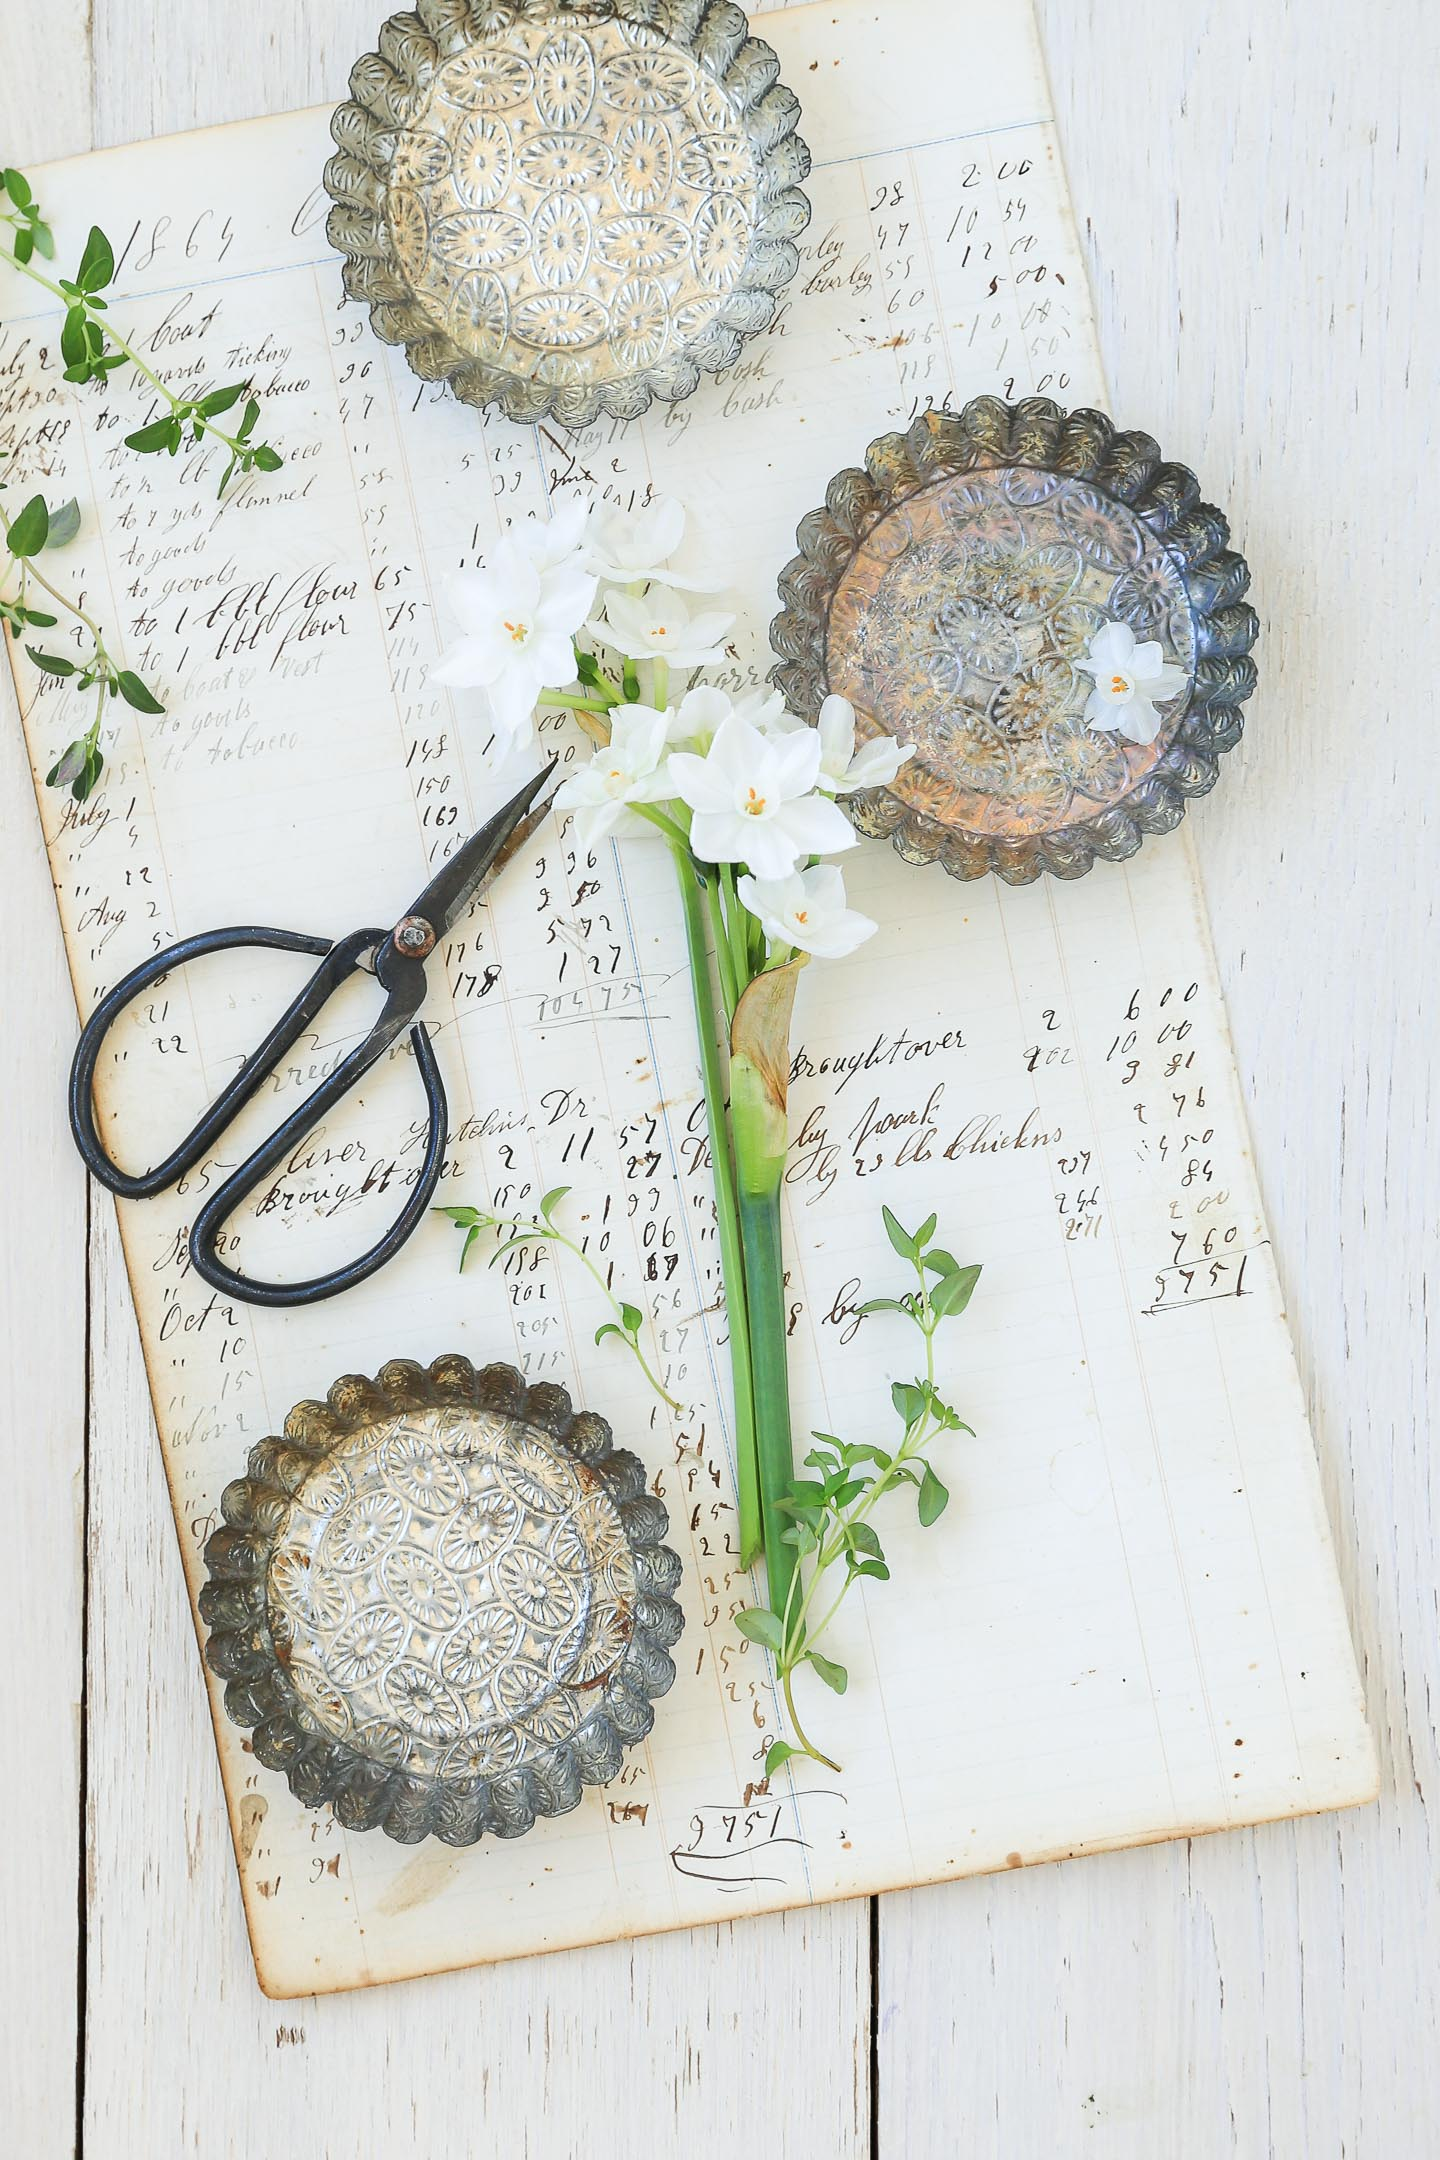 Embossed tart tins on antique paper with French writing, and some paperwhites.